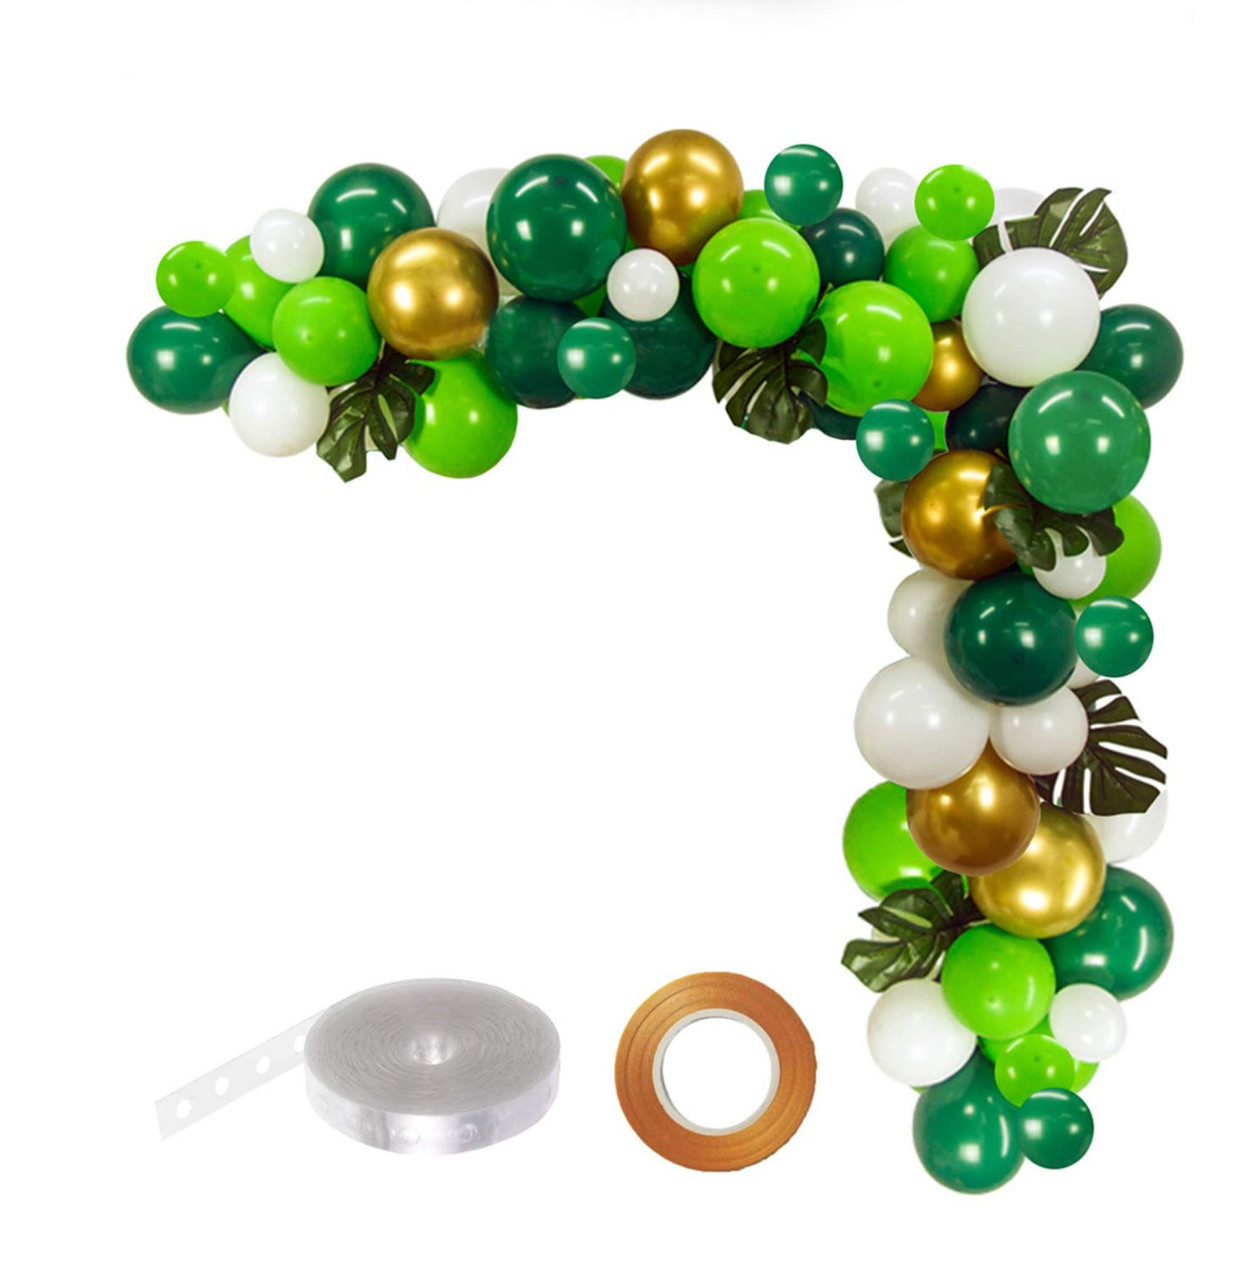 Jungle Balloon Garland Kit Green Gold Light Green And White 100pcs Party S R Us